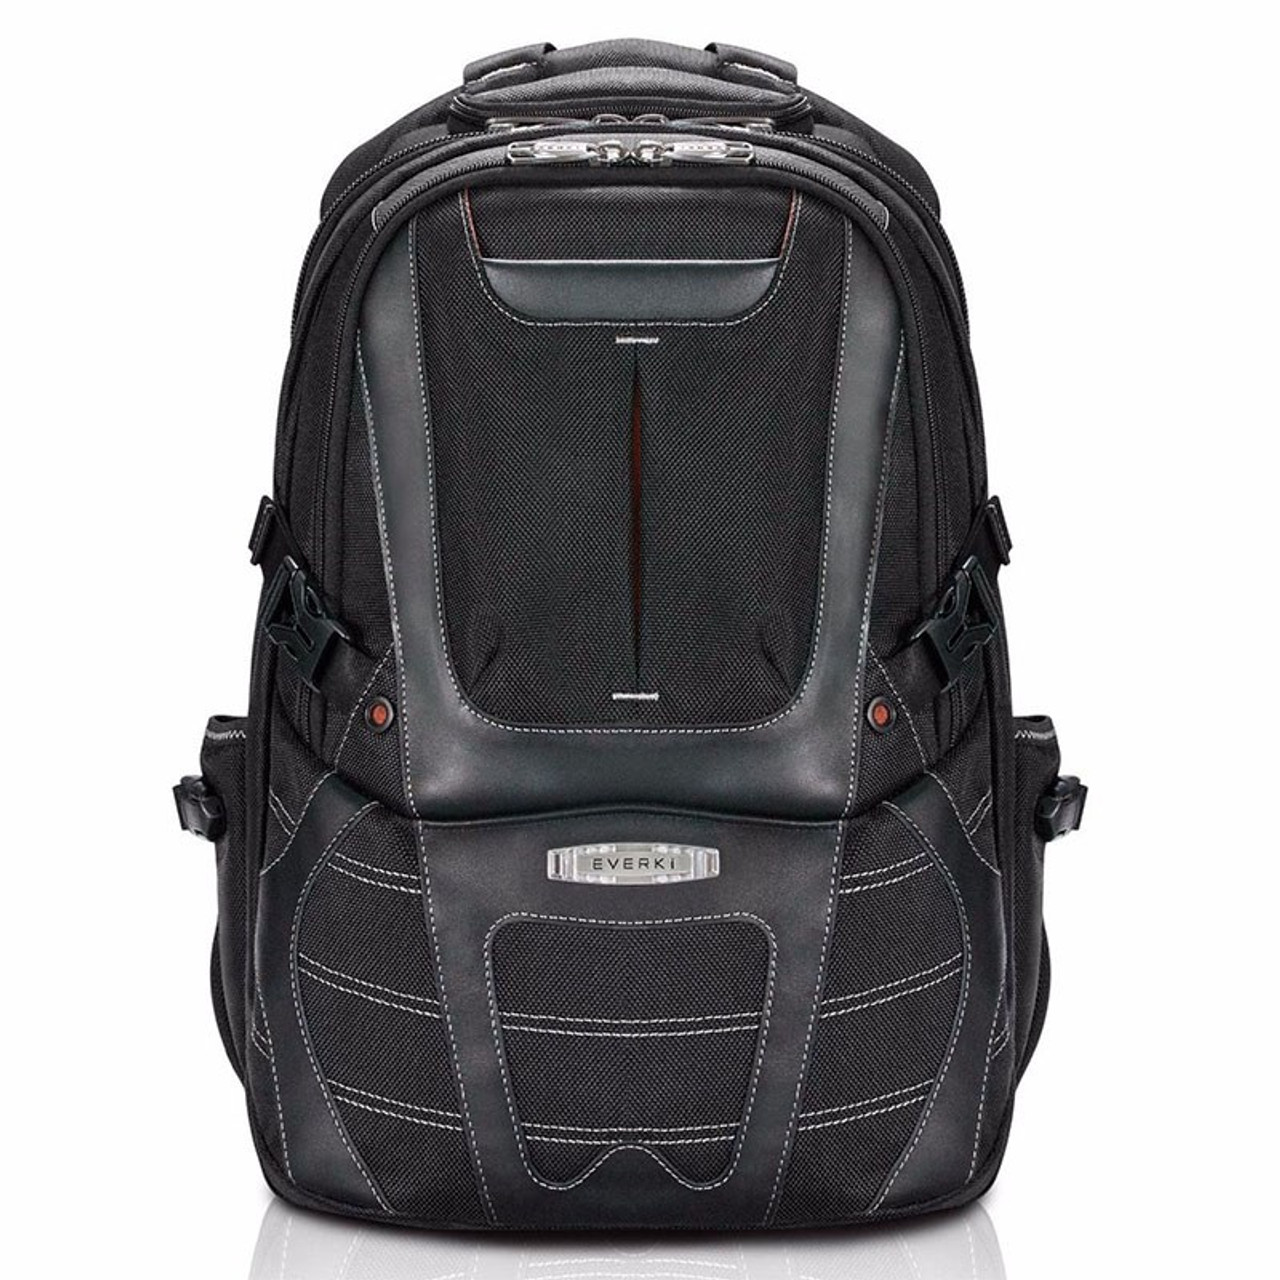 Image for Everki 17.3in Concept 2 Premium Travel Friendly Laptop Backpack CX Computer Superstore